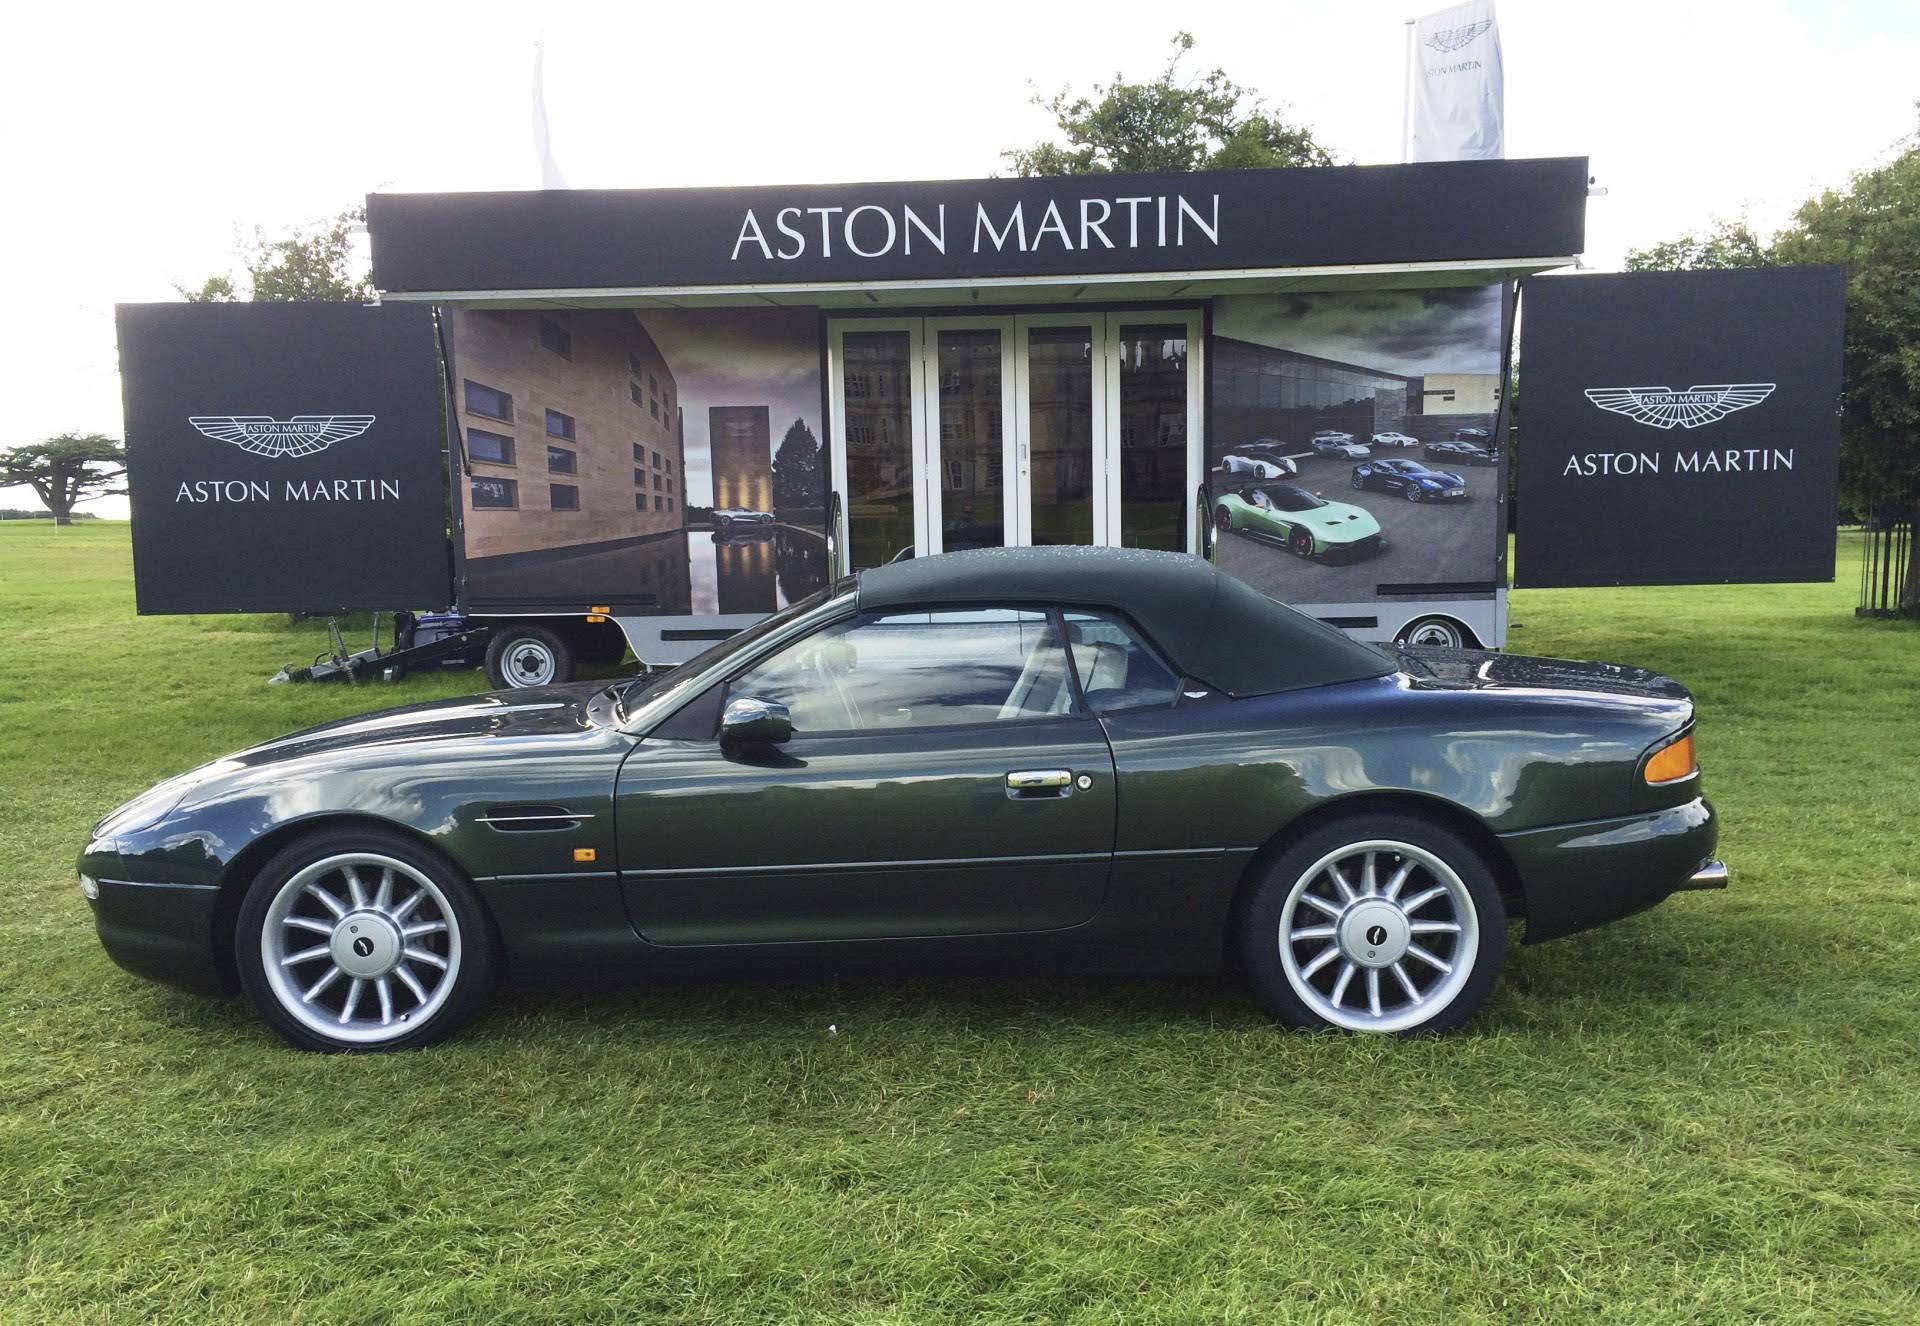 Aston Martin Wedding Car Price